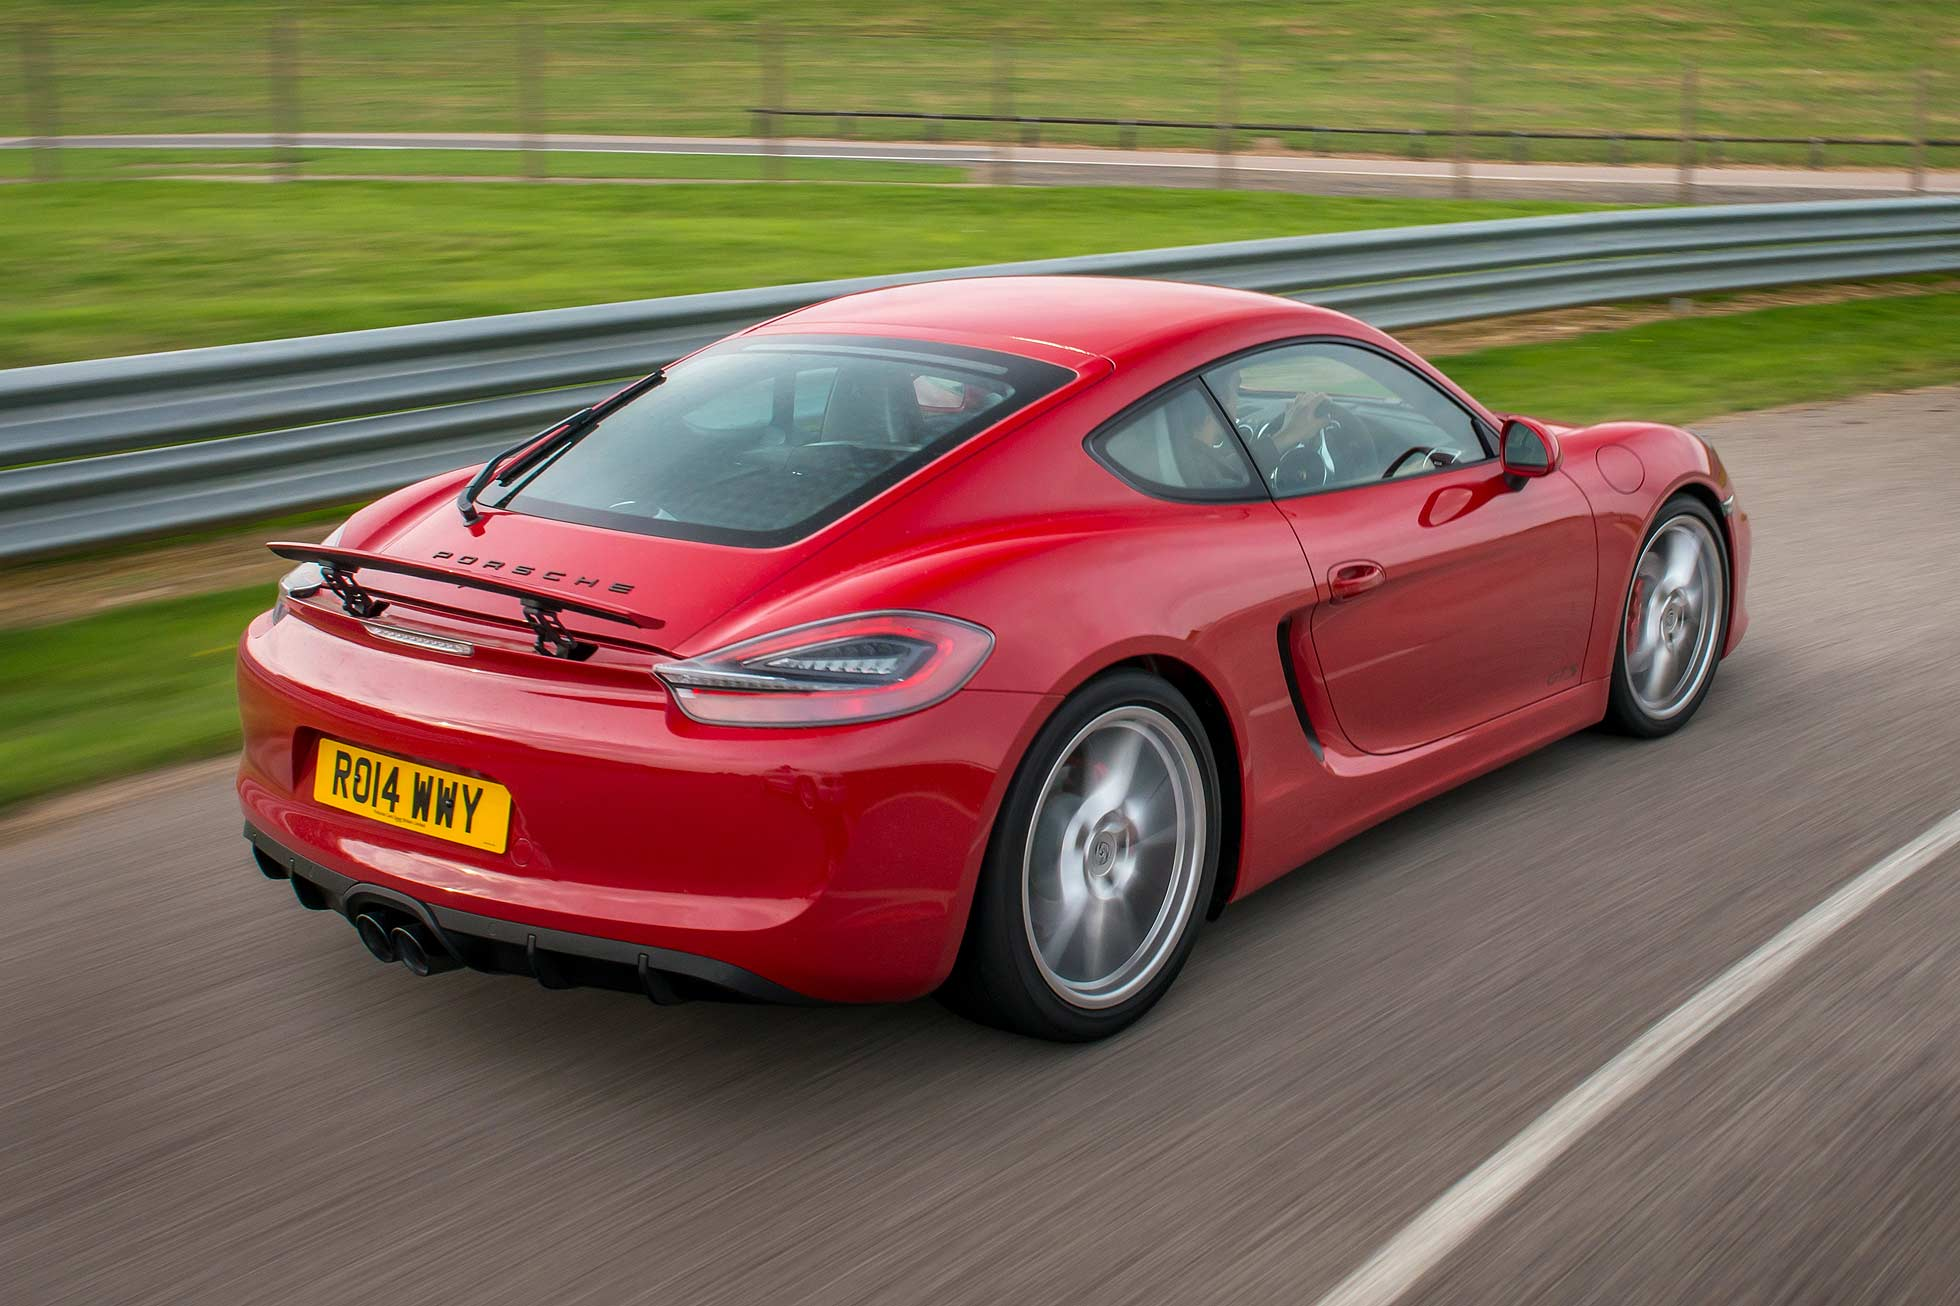 porsche cayman gts 2014 road test review motoring research. Black Bedroom Furniture Sets. Home Design Ideas